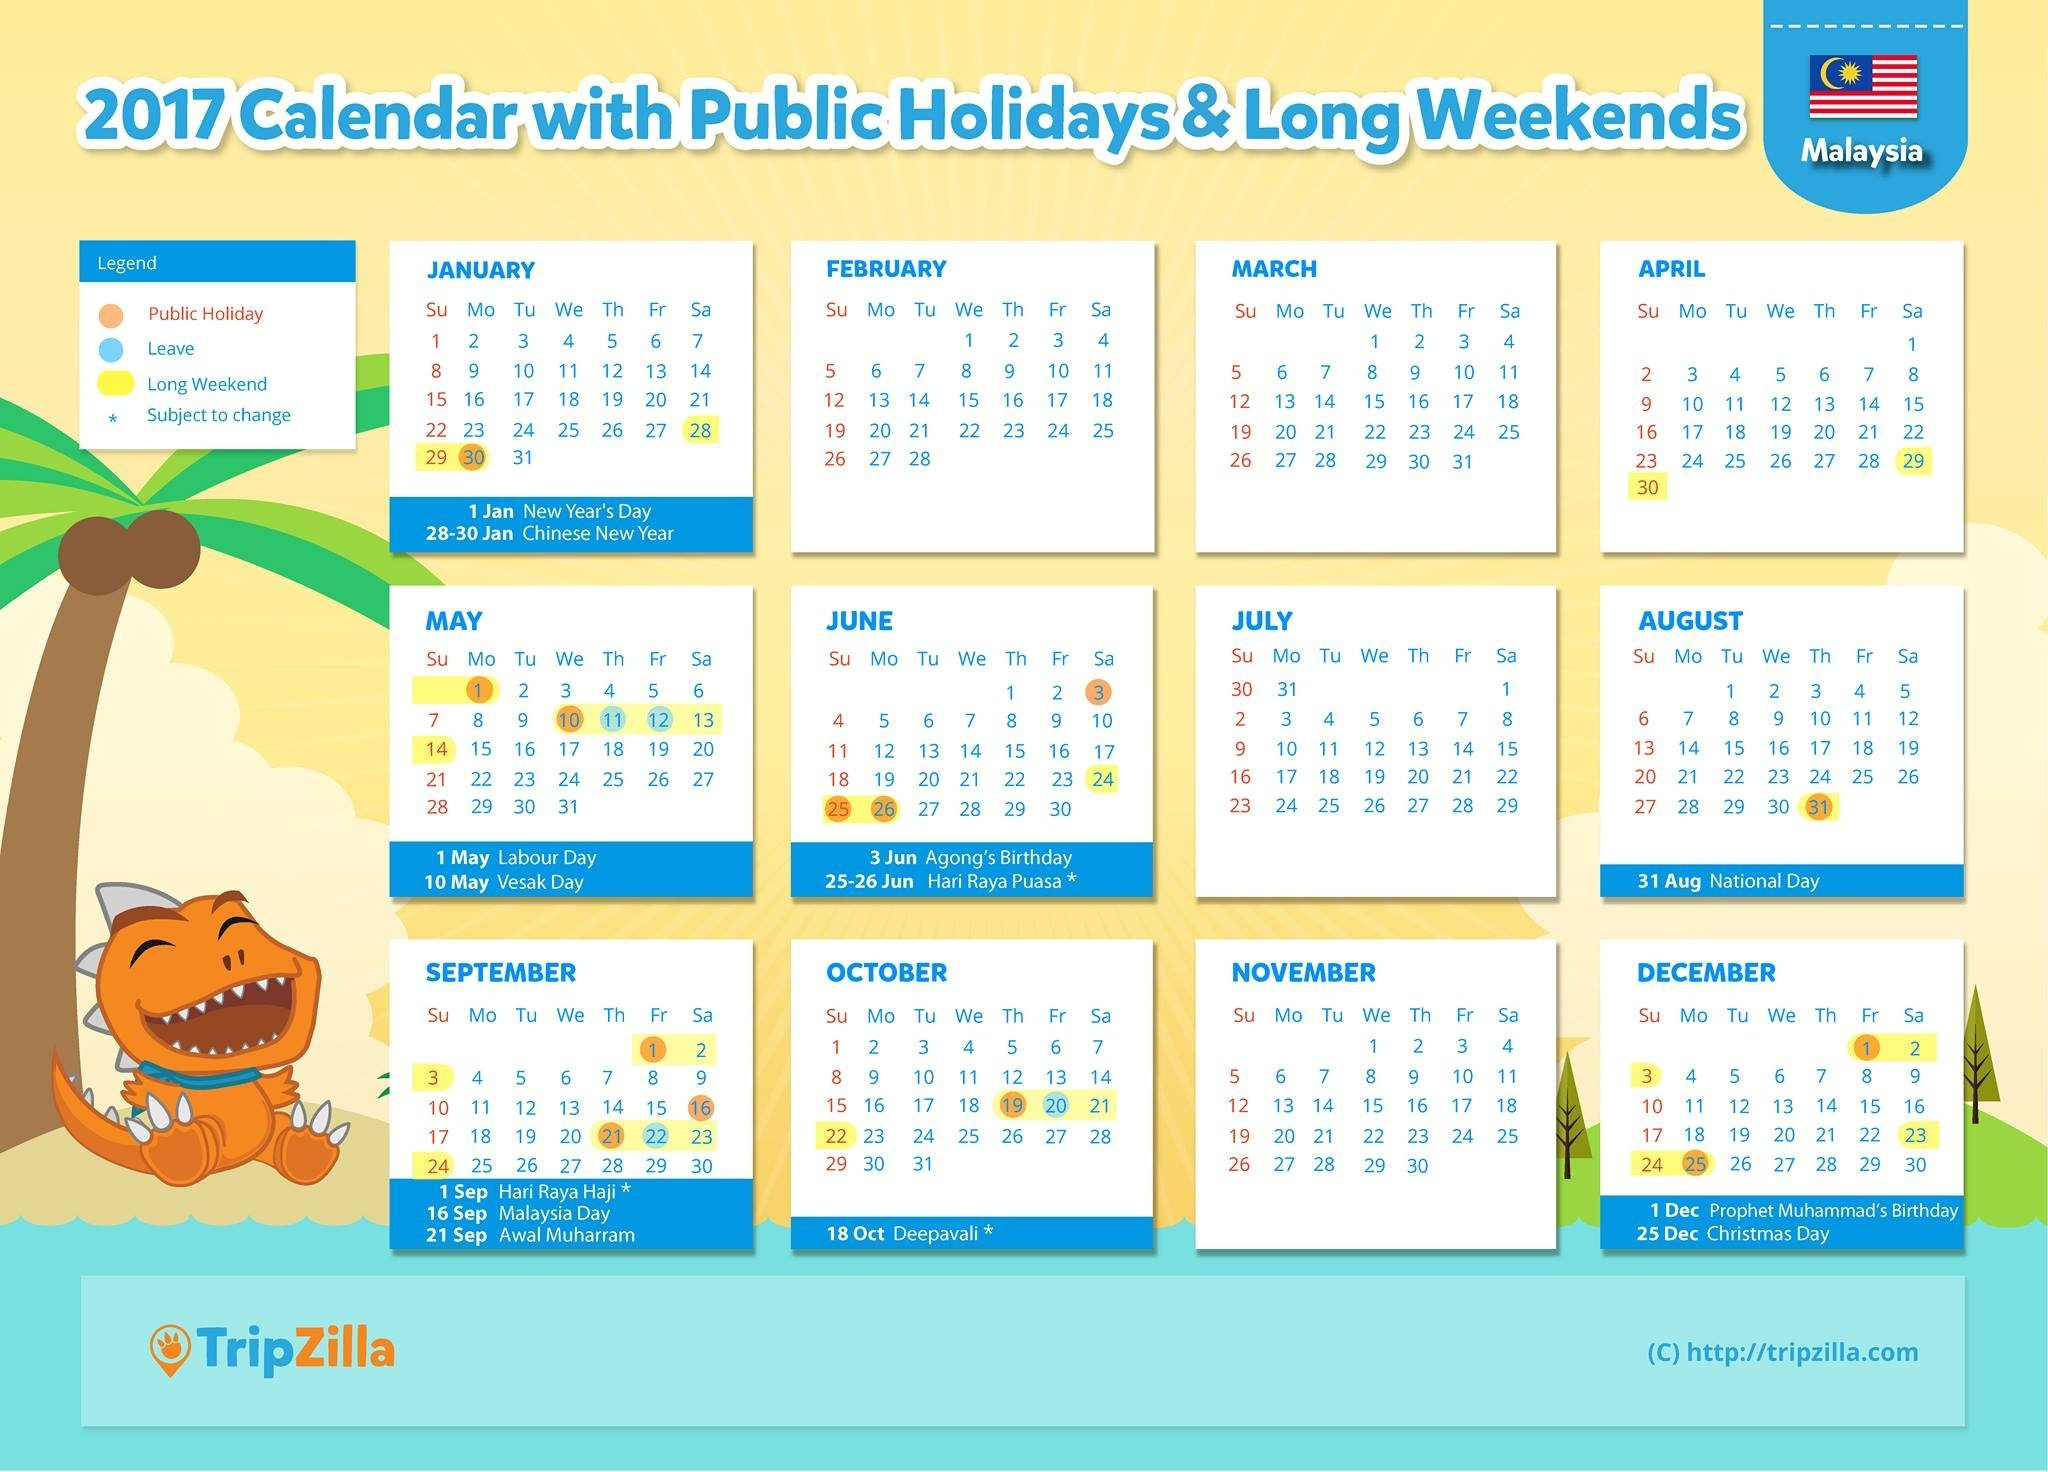 9 Long Weekends in Malaysia in 2017